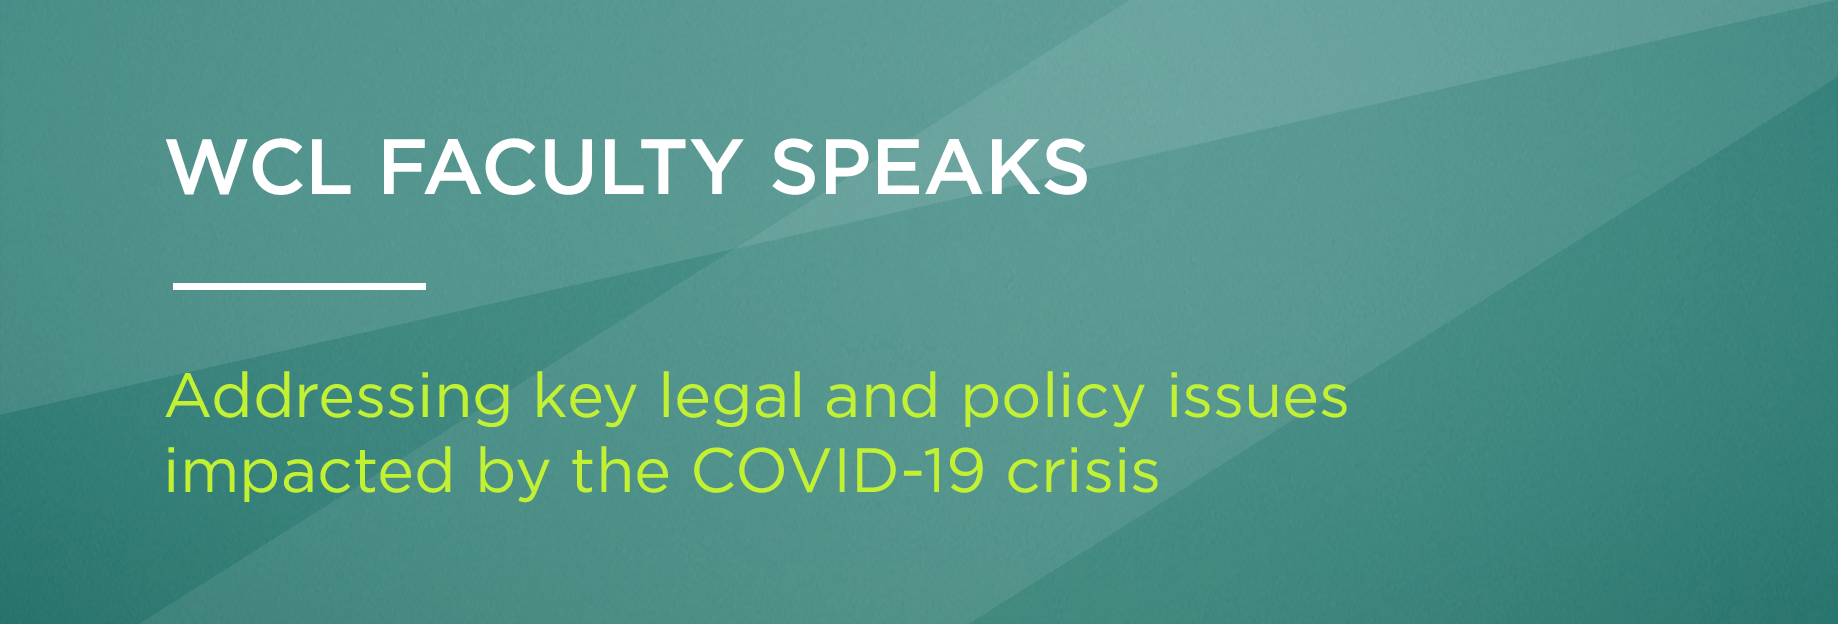 WCL Faculty Speaks - Addressing key legal and policy issues impacted by the COVID-19 crisis